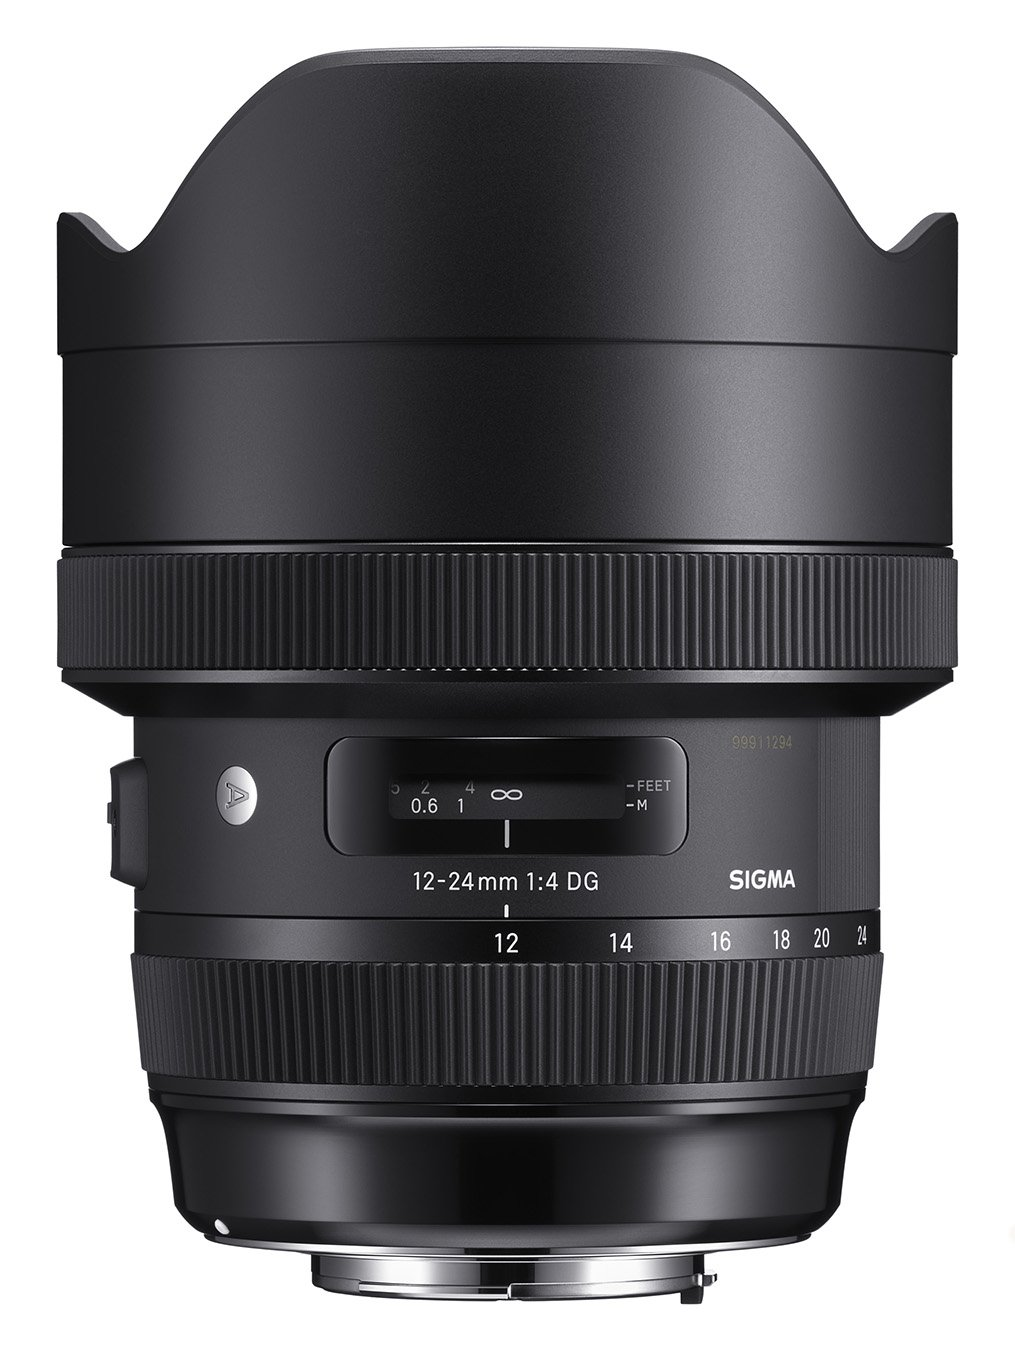 Sigma 12-24mm f/4 DG HSM Art Lens for Nikon F Black Friday Deals 2019